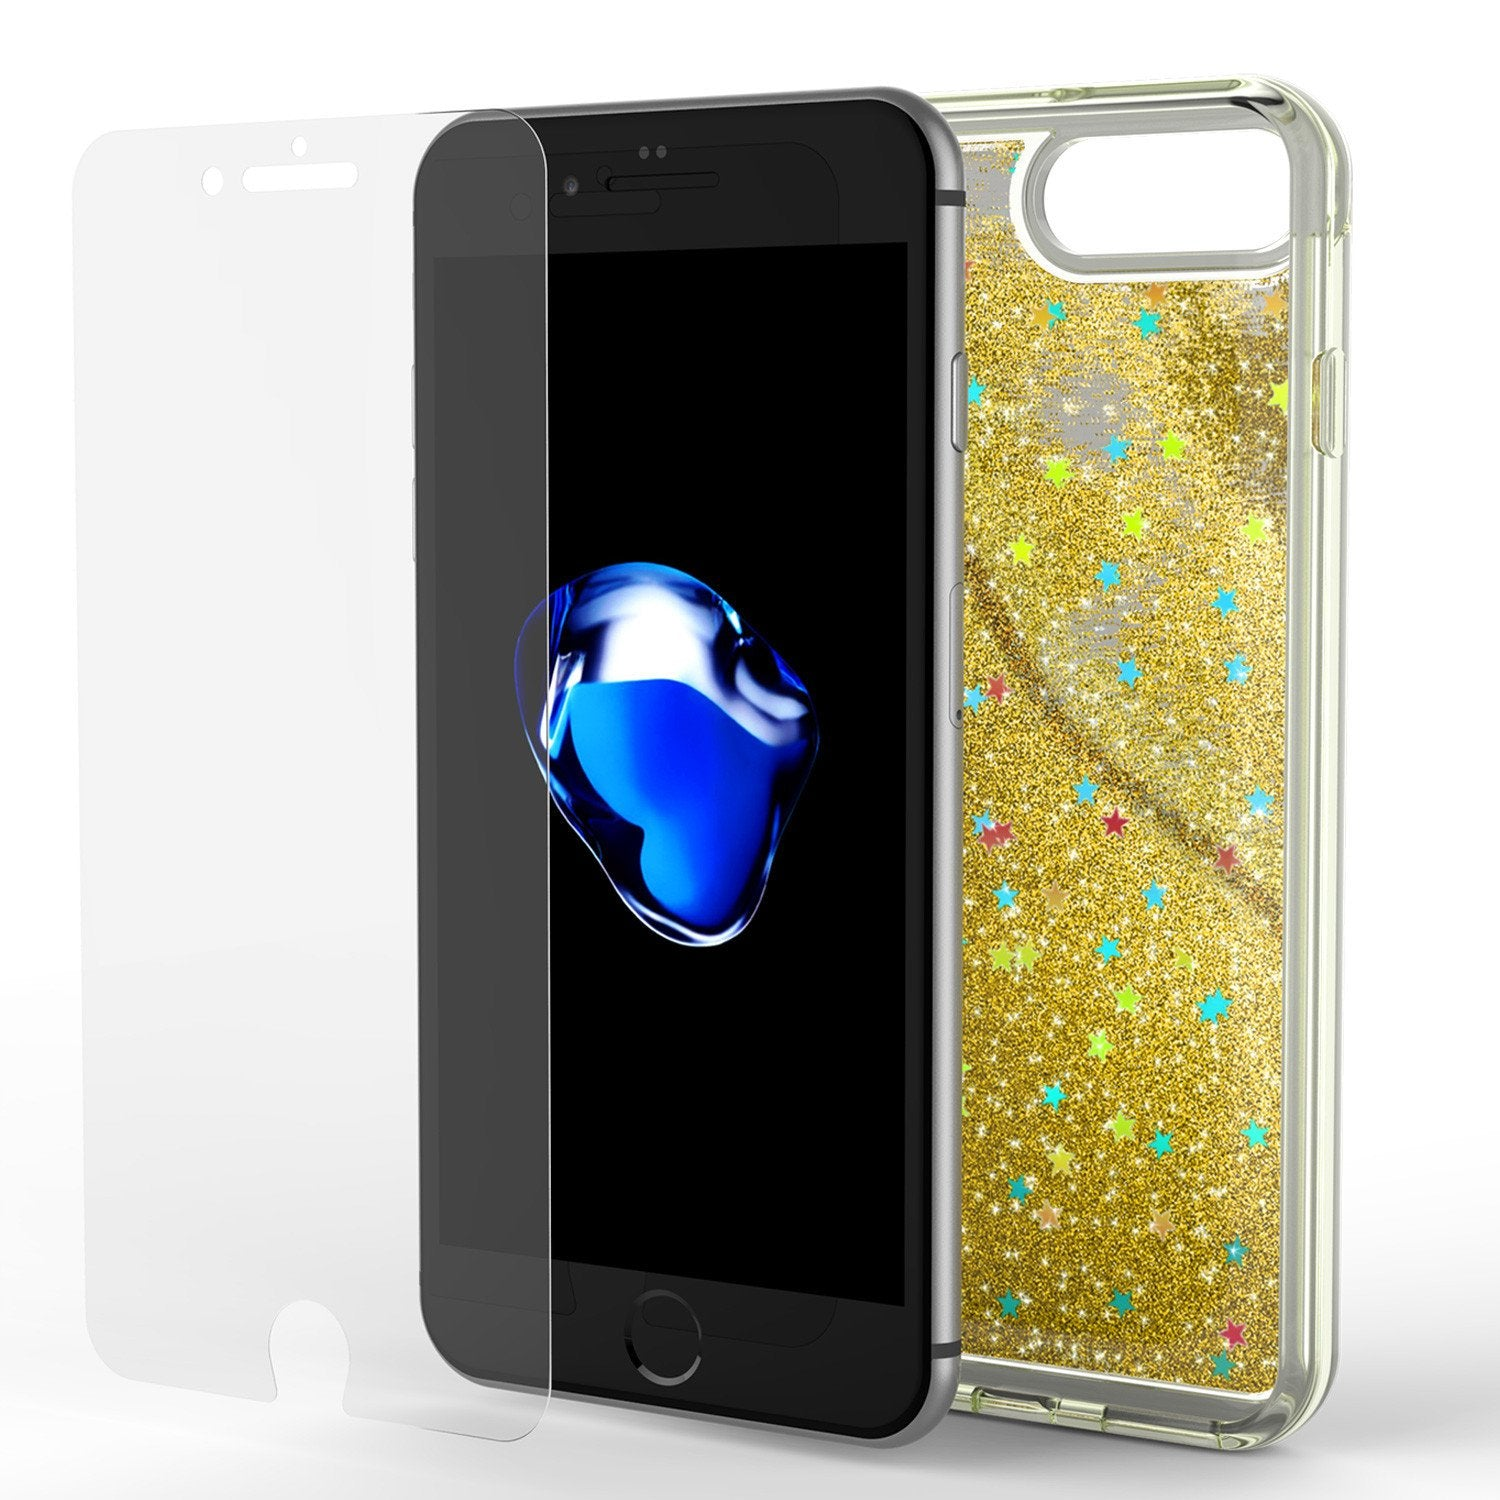 iPhone 7 Plus Case, Punkcase [Liquid Gold Series] Protective Dual Layer Floating Glitter Cover with lots of Bling & Sparkle + 0.3mm Tempered Glass Screen Protector for Apple iPhone 7s Plus